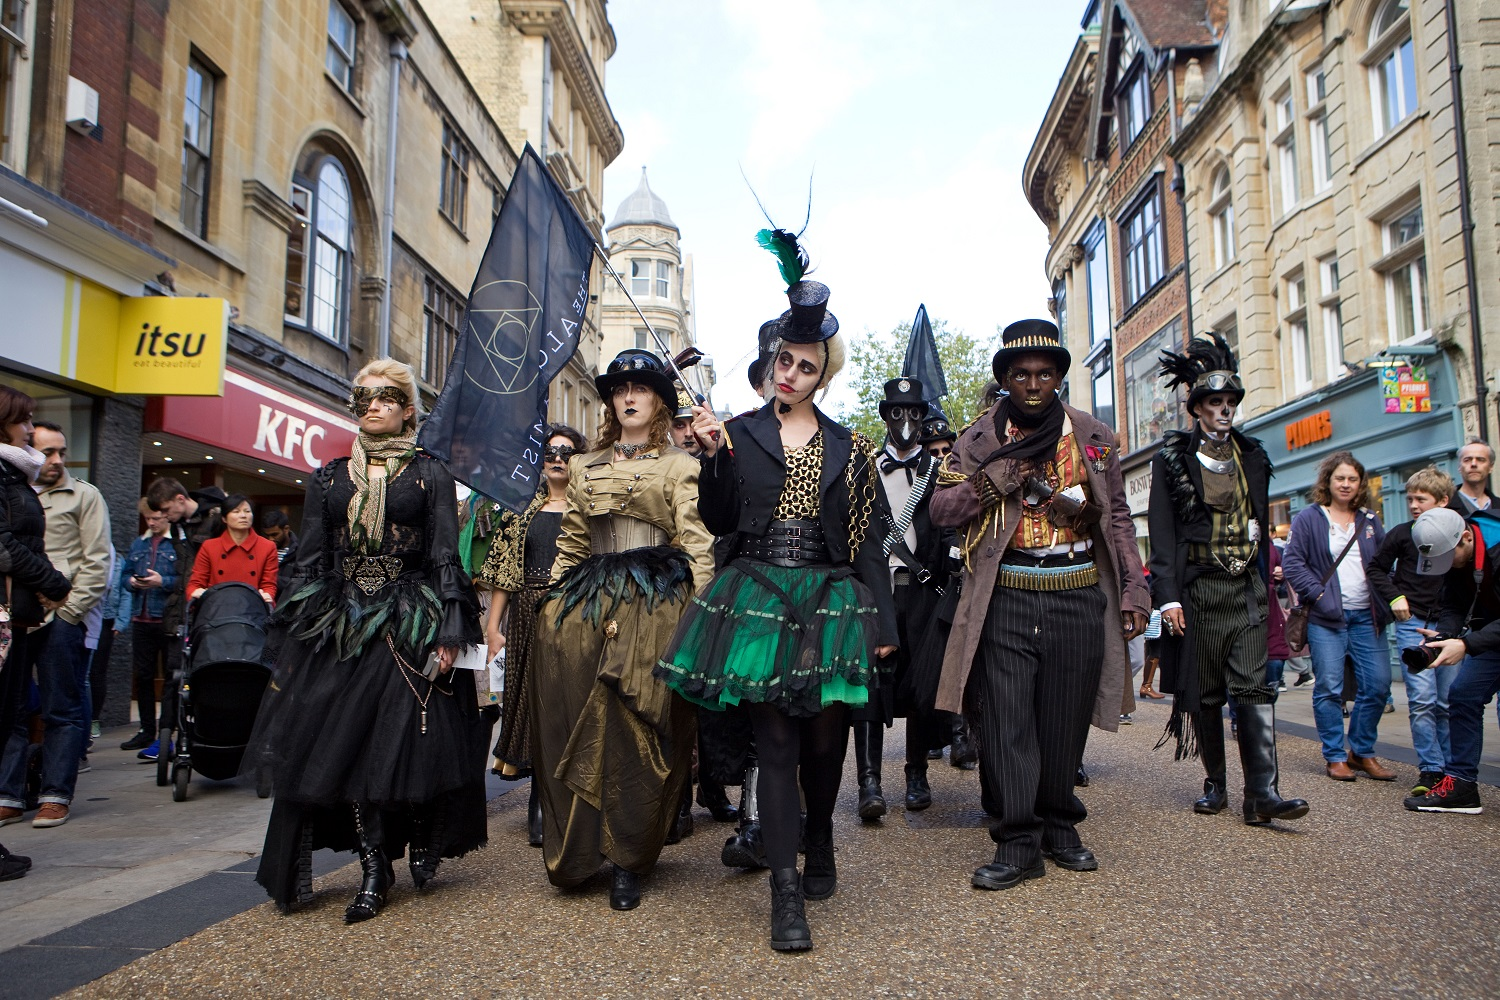 A group of attractive men and women strut along a street in Oxford, wearing Streampunk clothing